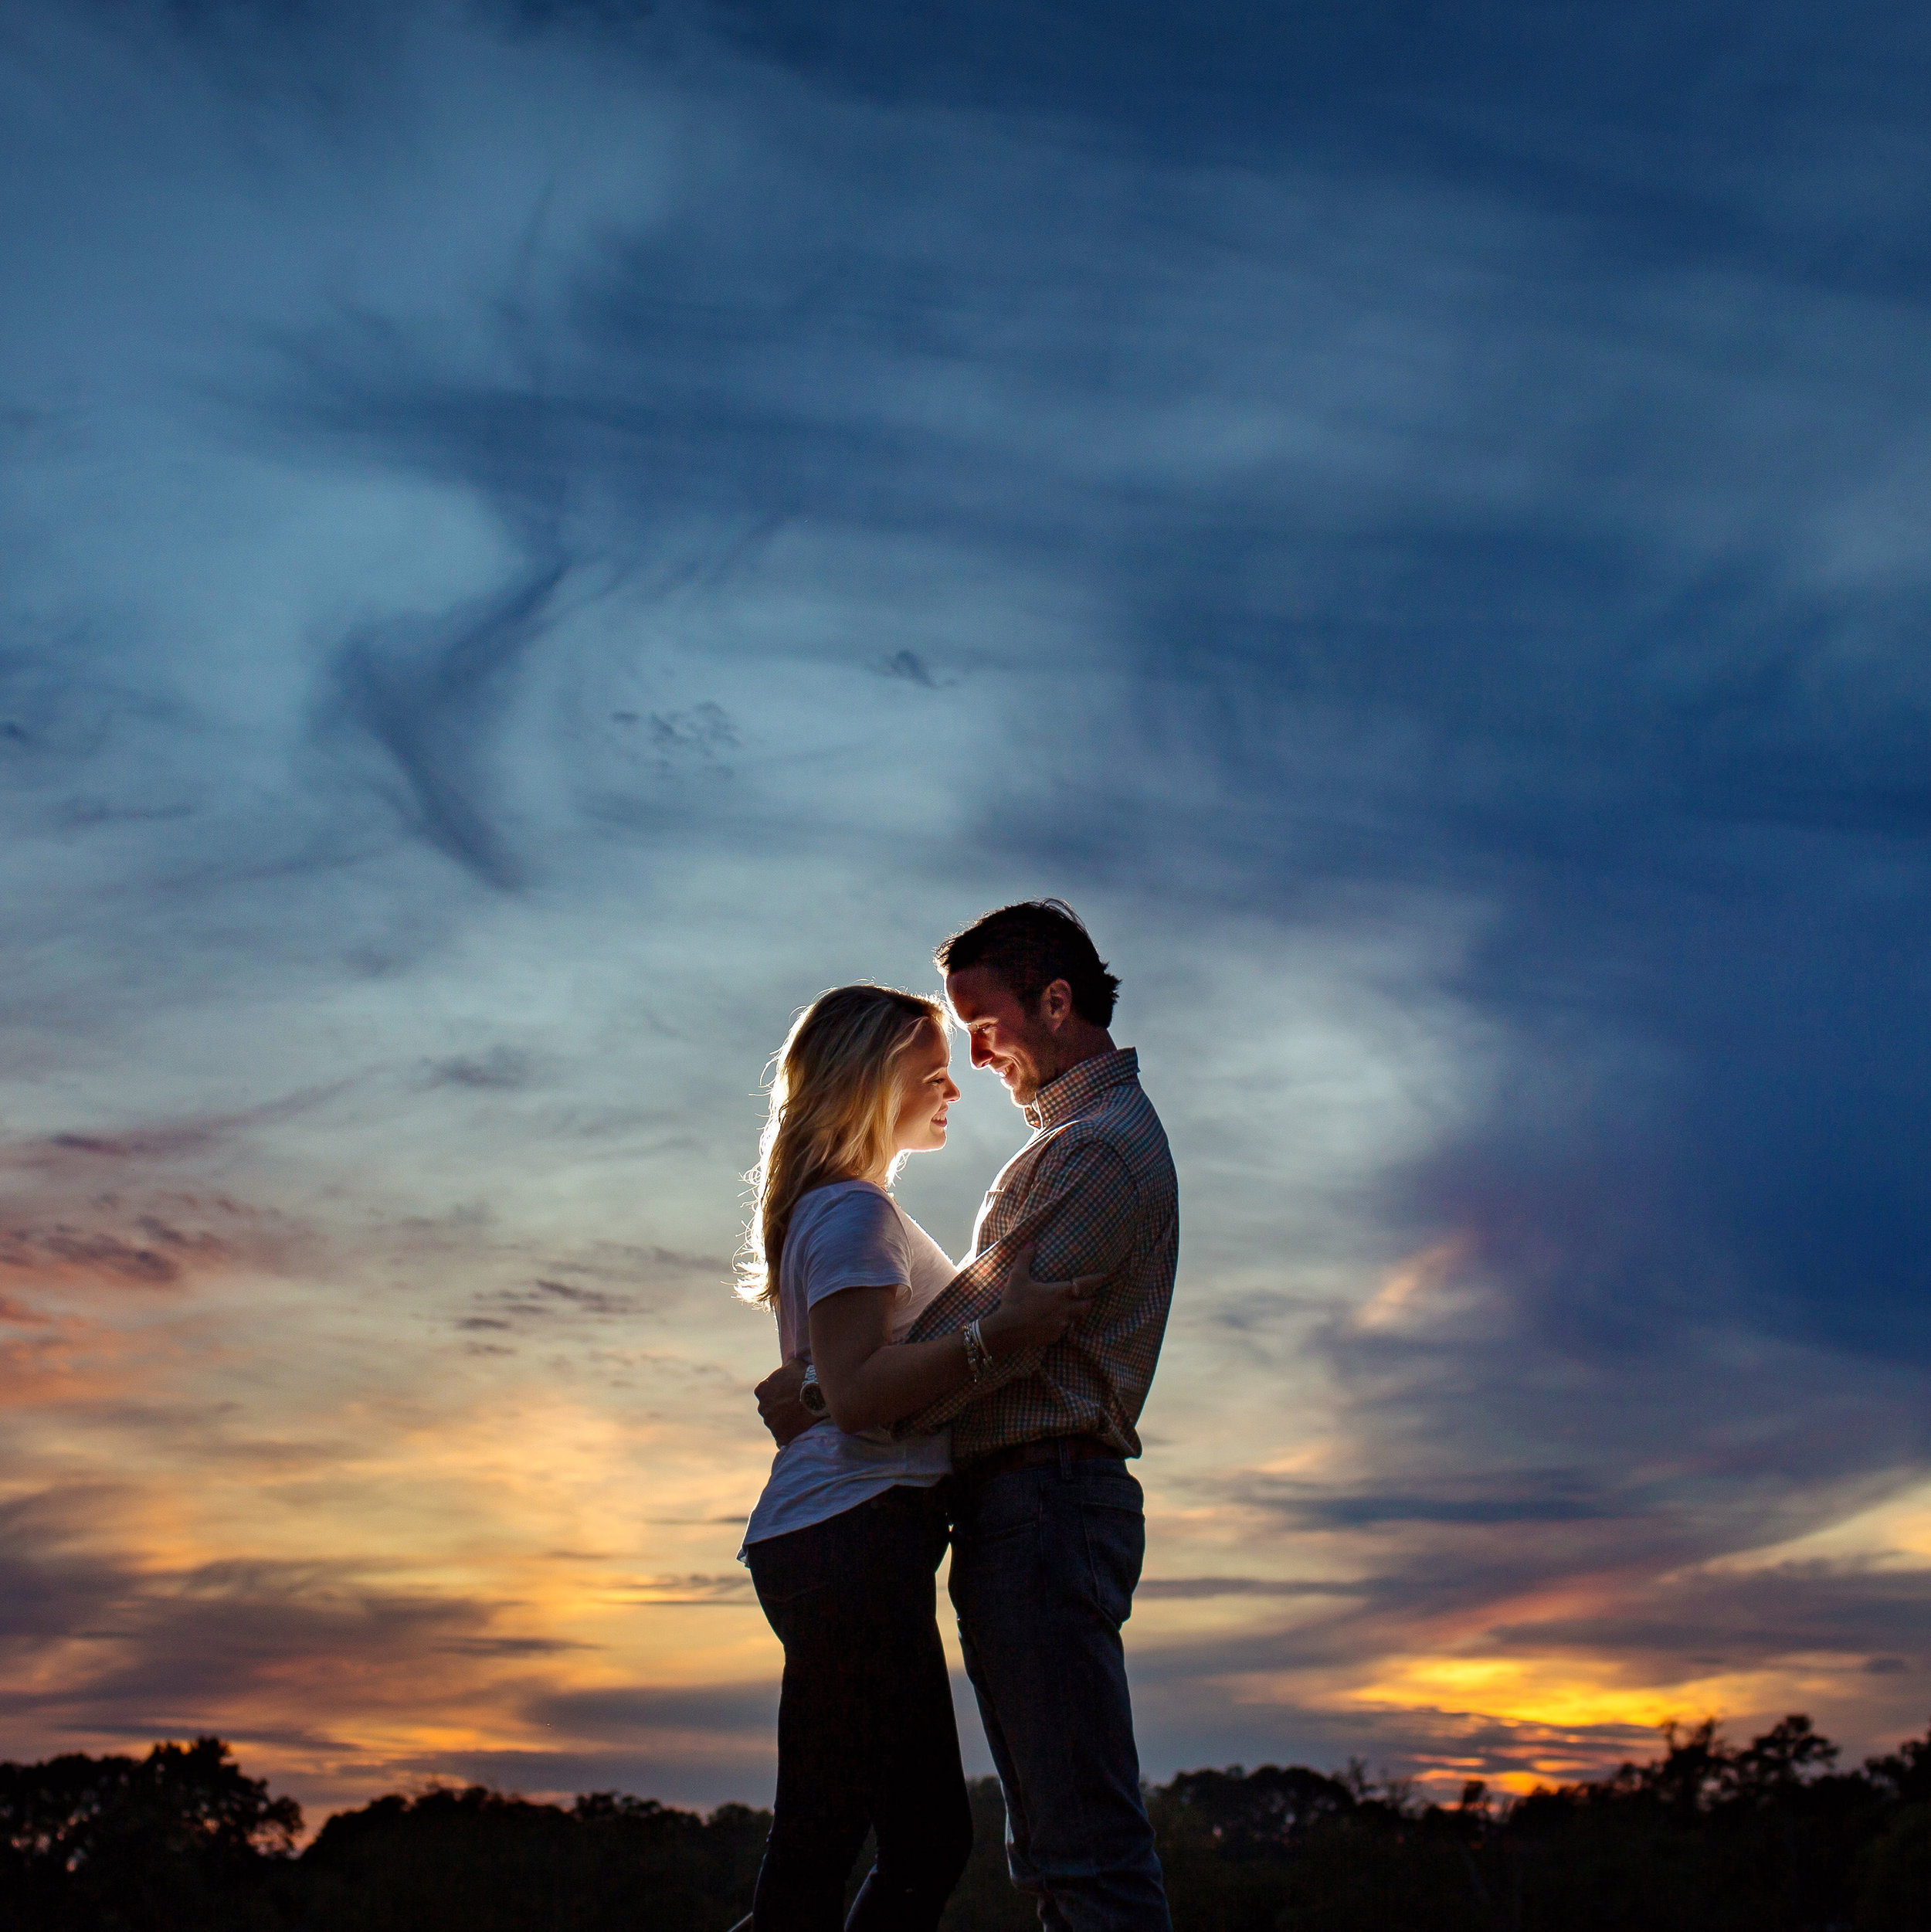 COUPLES - A whole lot of fun, a bit of romance, and two people excited to start their journey as one.